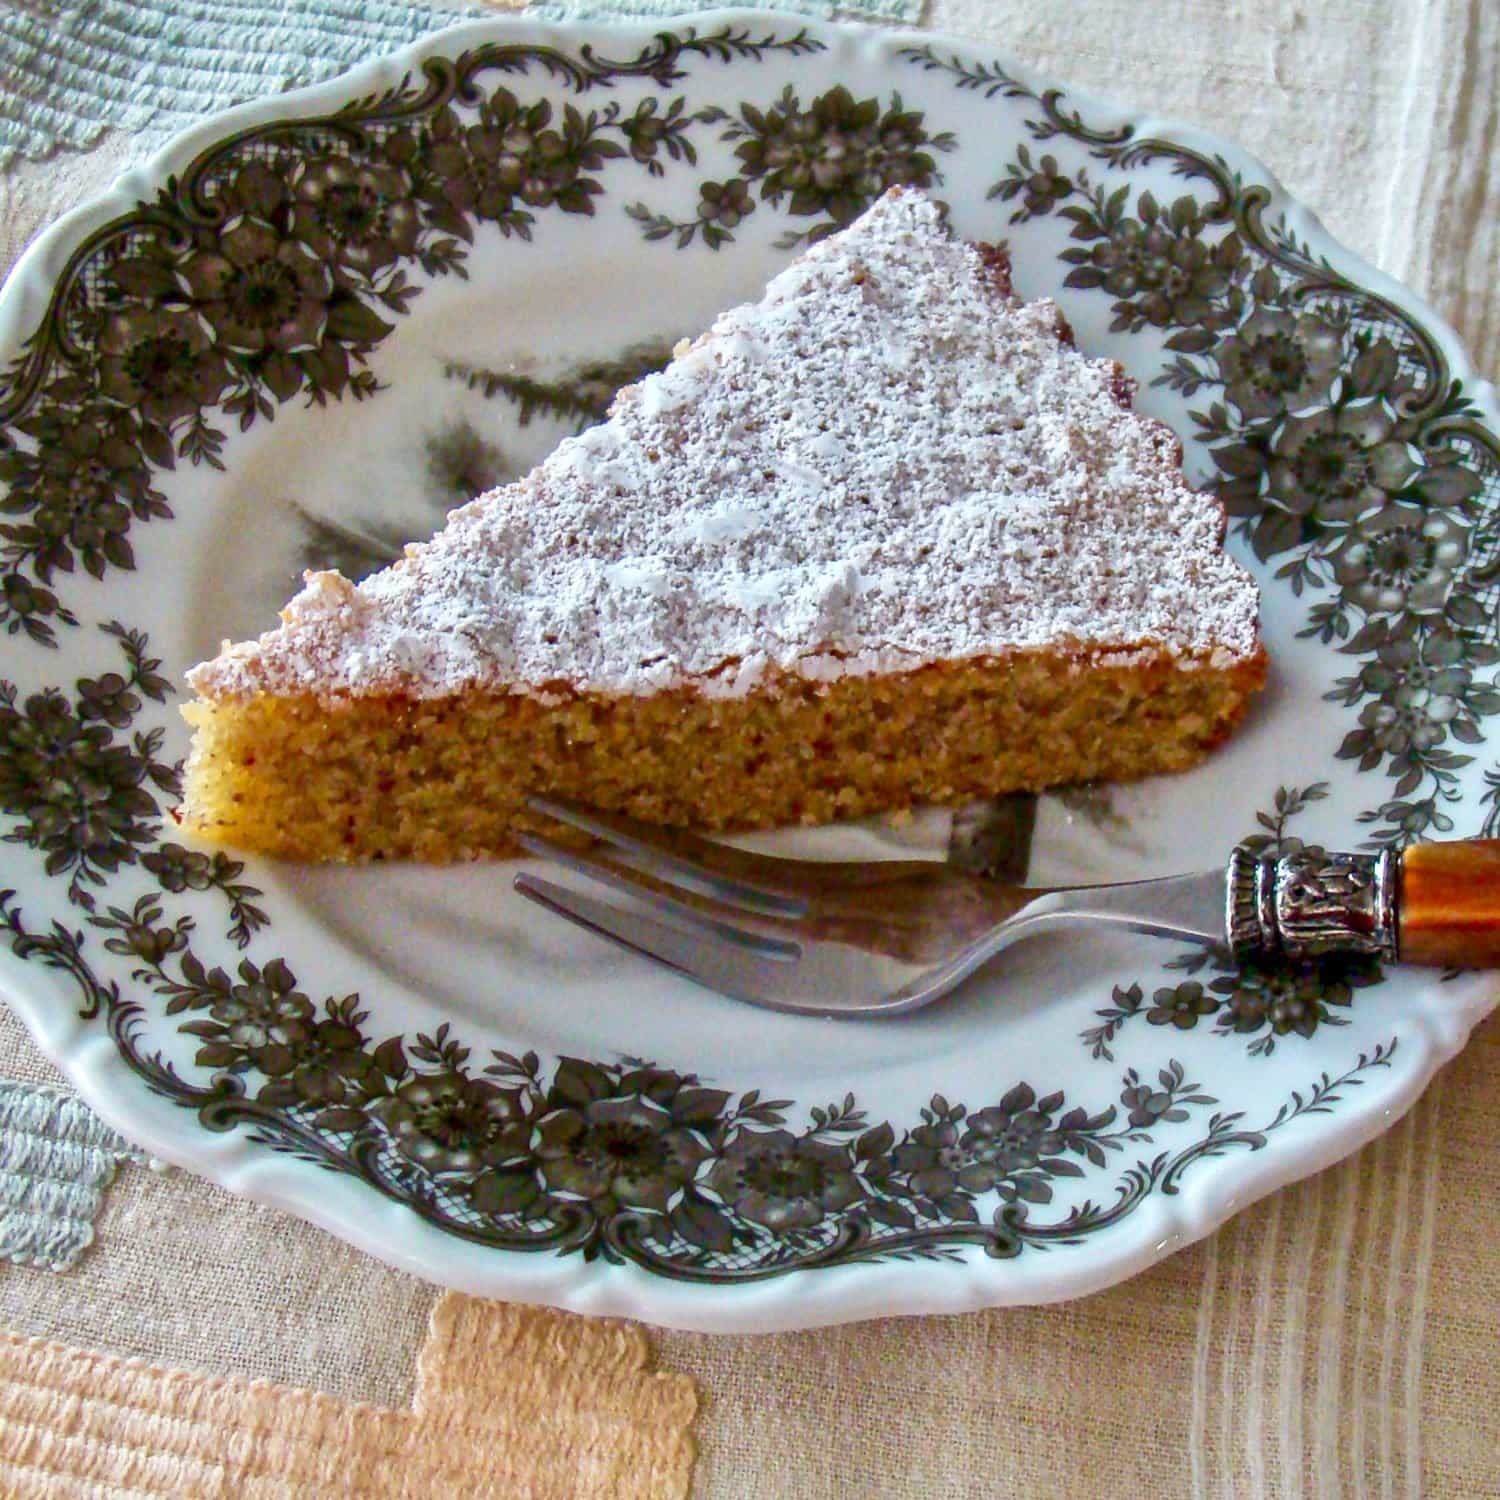 Spanish Almond Cake Recipe- Tarta de Santiago- A traditional Spanish cake that requires little effort to make, it is delicious and also gluten-free. If you love almonds, this recipe is for you. The recipe is suitable for holidays, dinners in the family or any other events when an easy dessert is required.